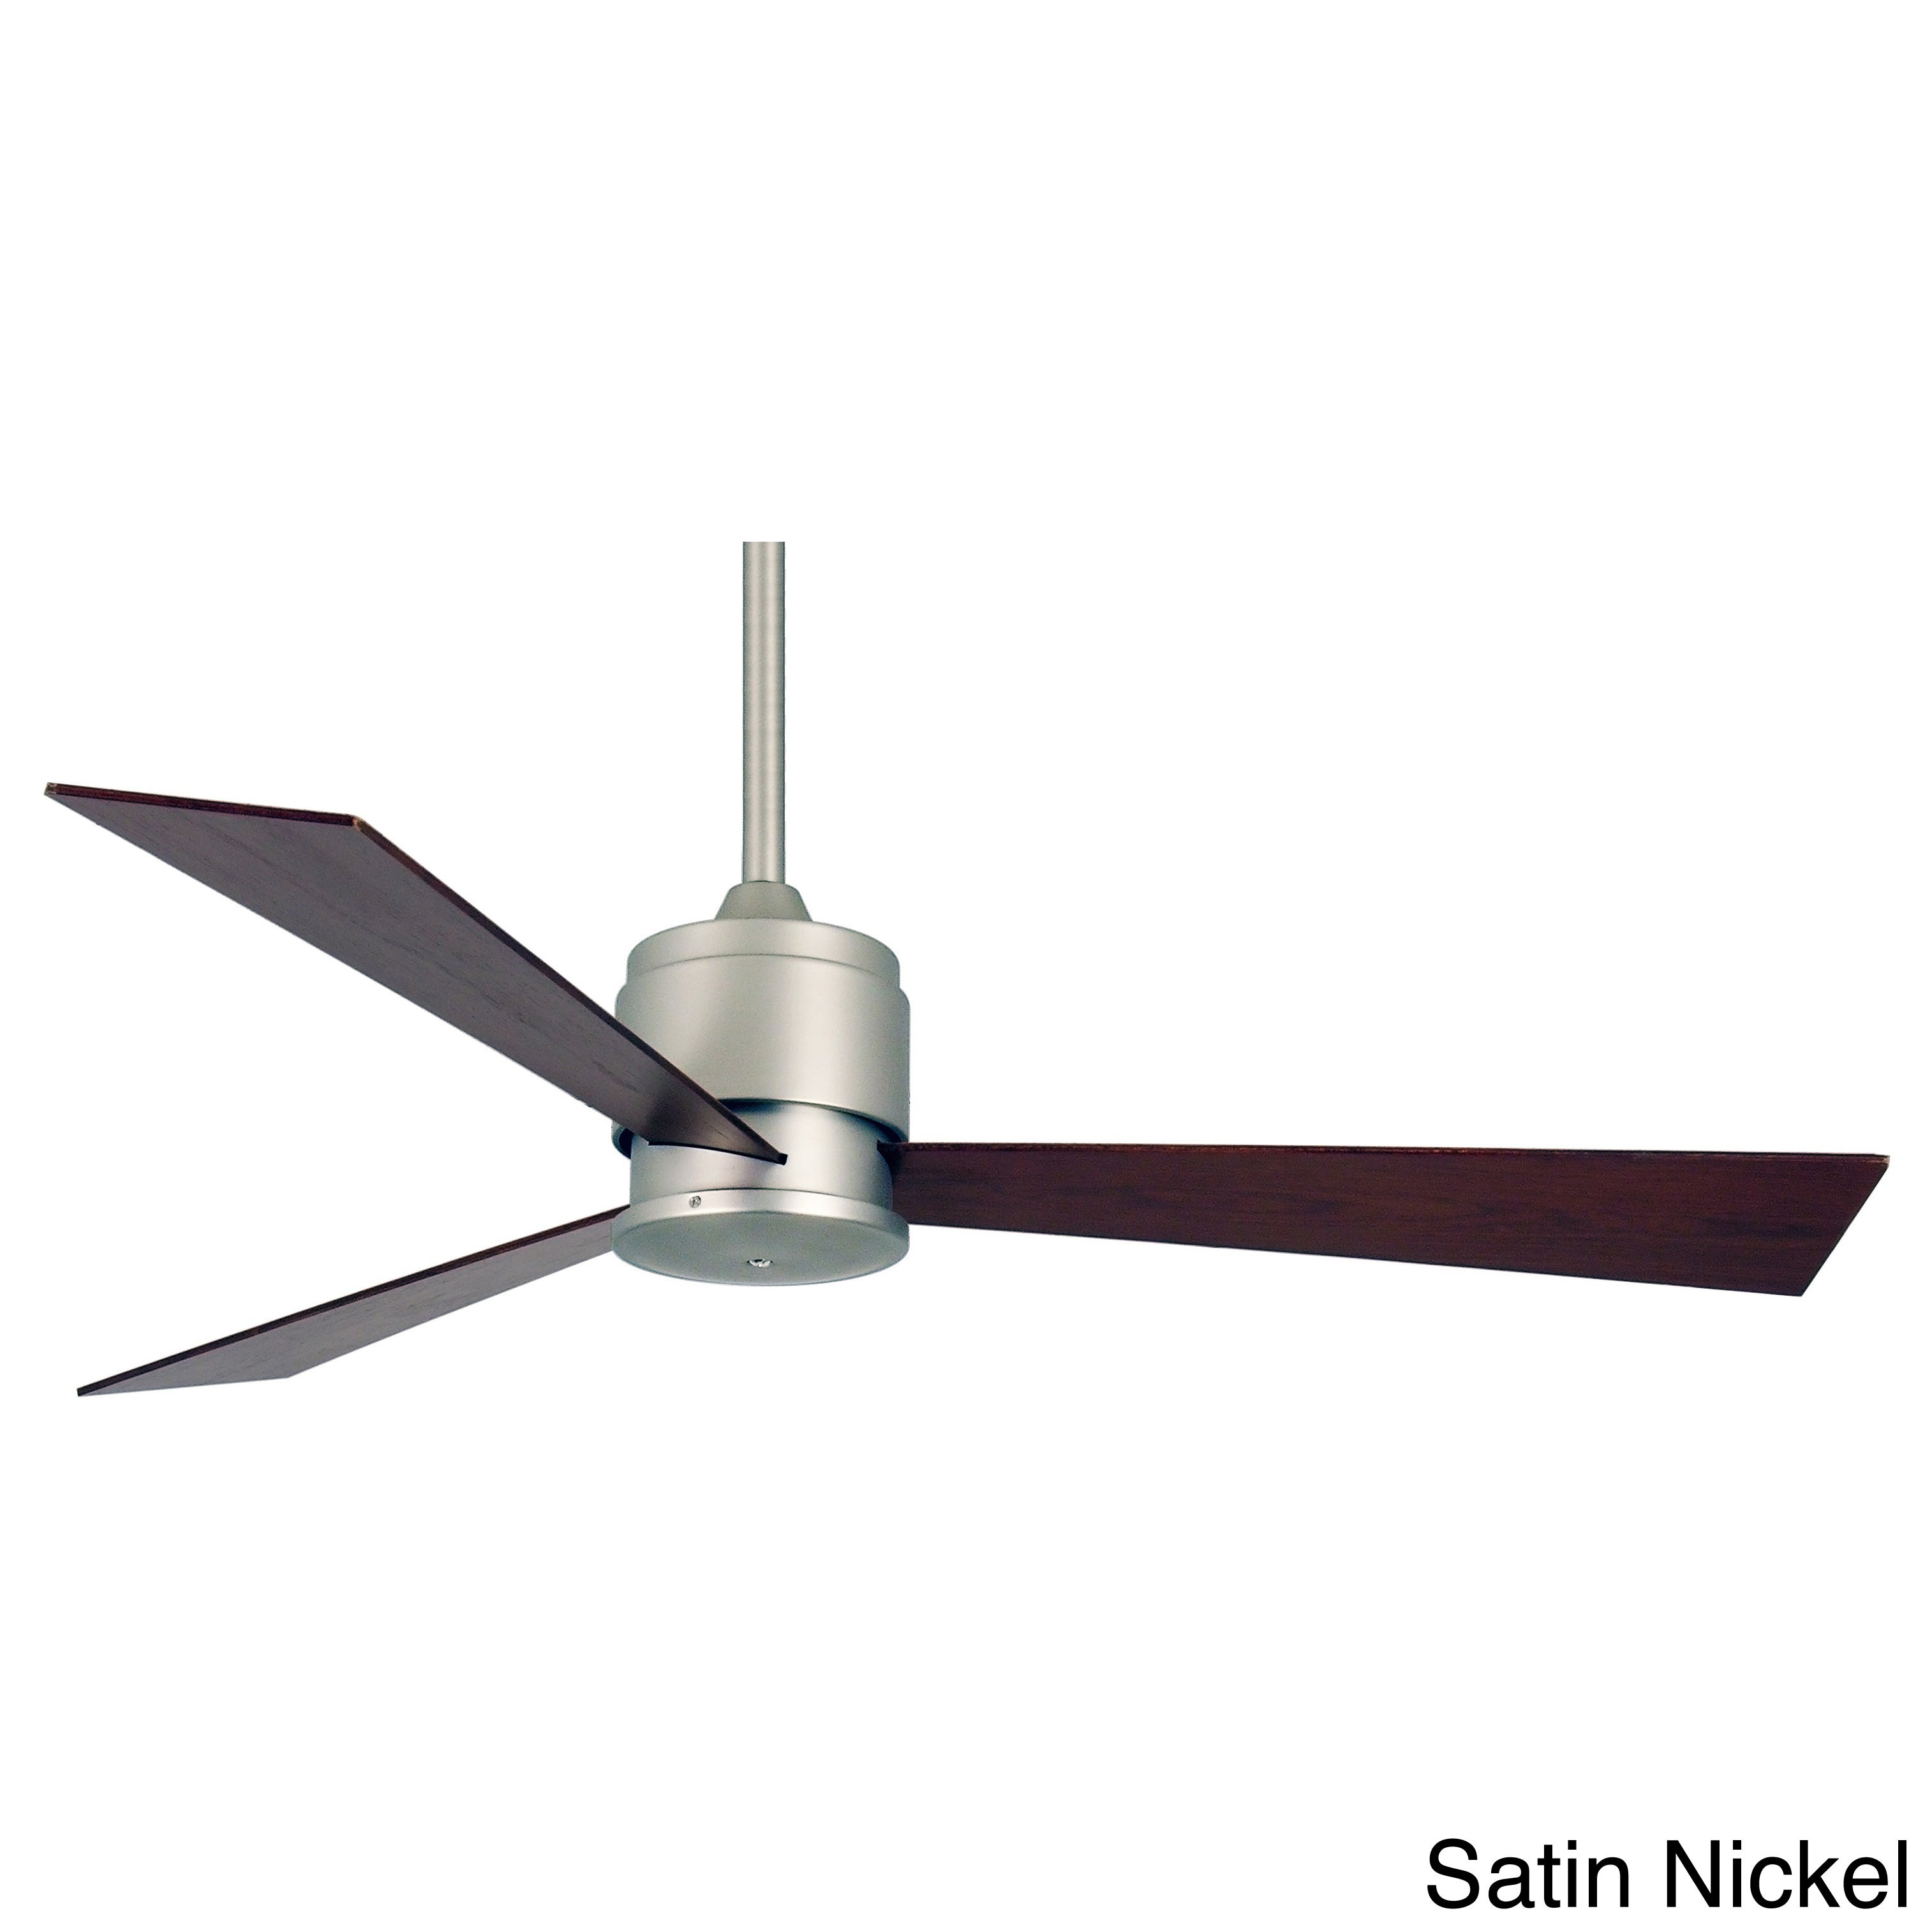 Fanimation zonix 54 inch ceiling fan free shipping today fanimation zonix 54 inch ceiling fan free shipping today overstock 15436277 aloadofball